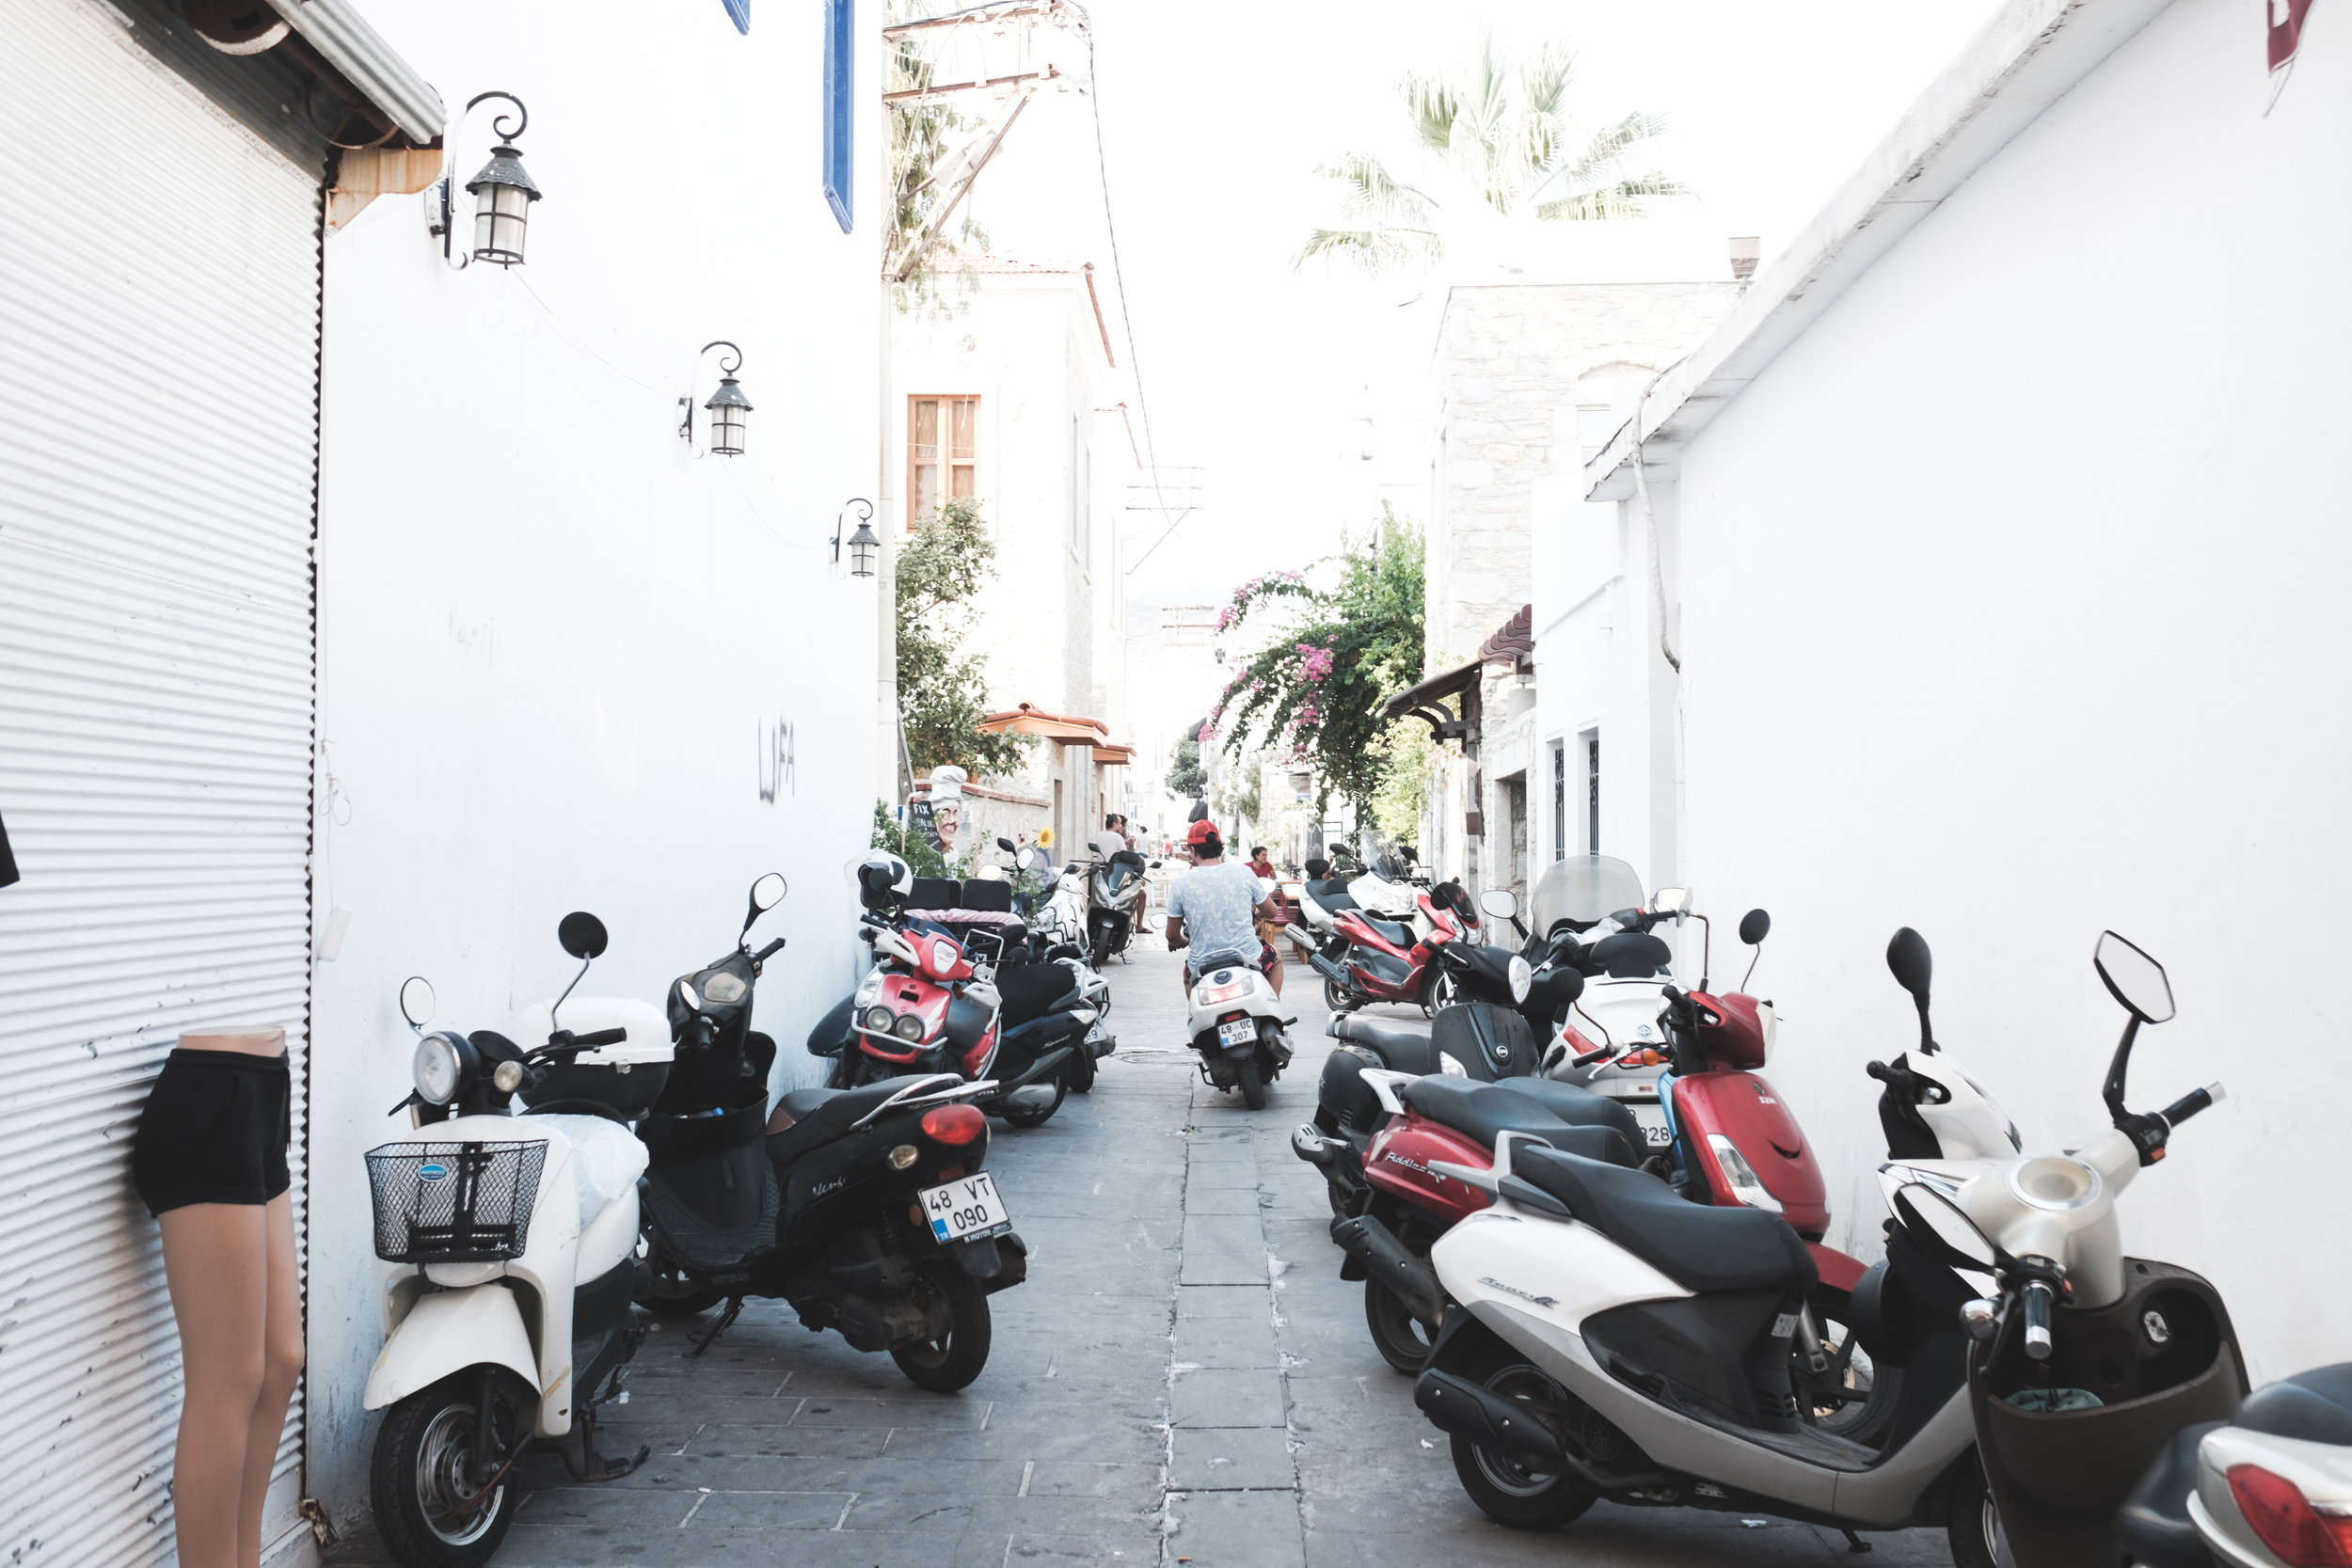 A narrow alley in Bodrum Turkey lined up with scooters